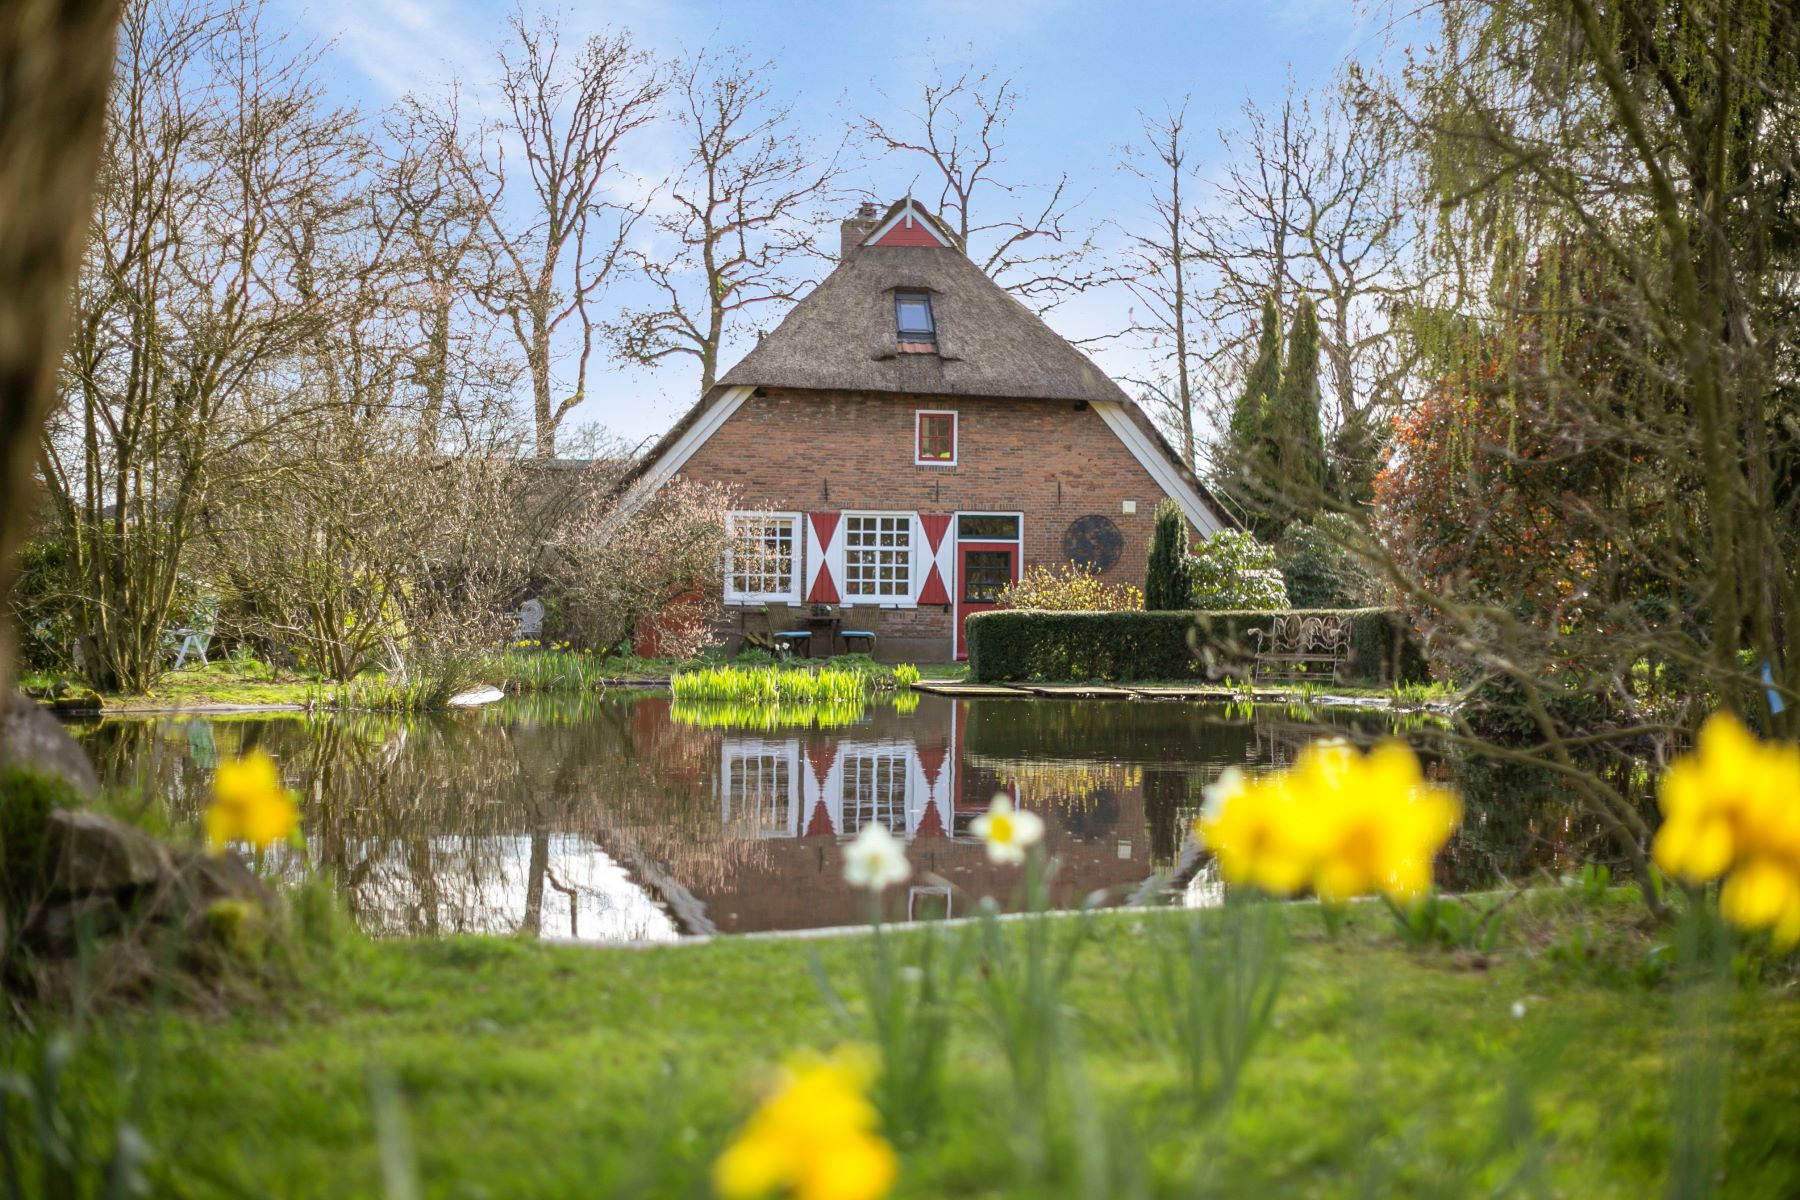 Single Family Homes for Sale at Unique Farmhouse Papenstraat 10 Epe, Gelderland 8162 RP Netherlands